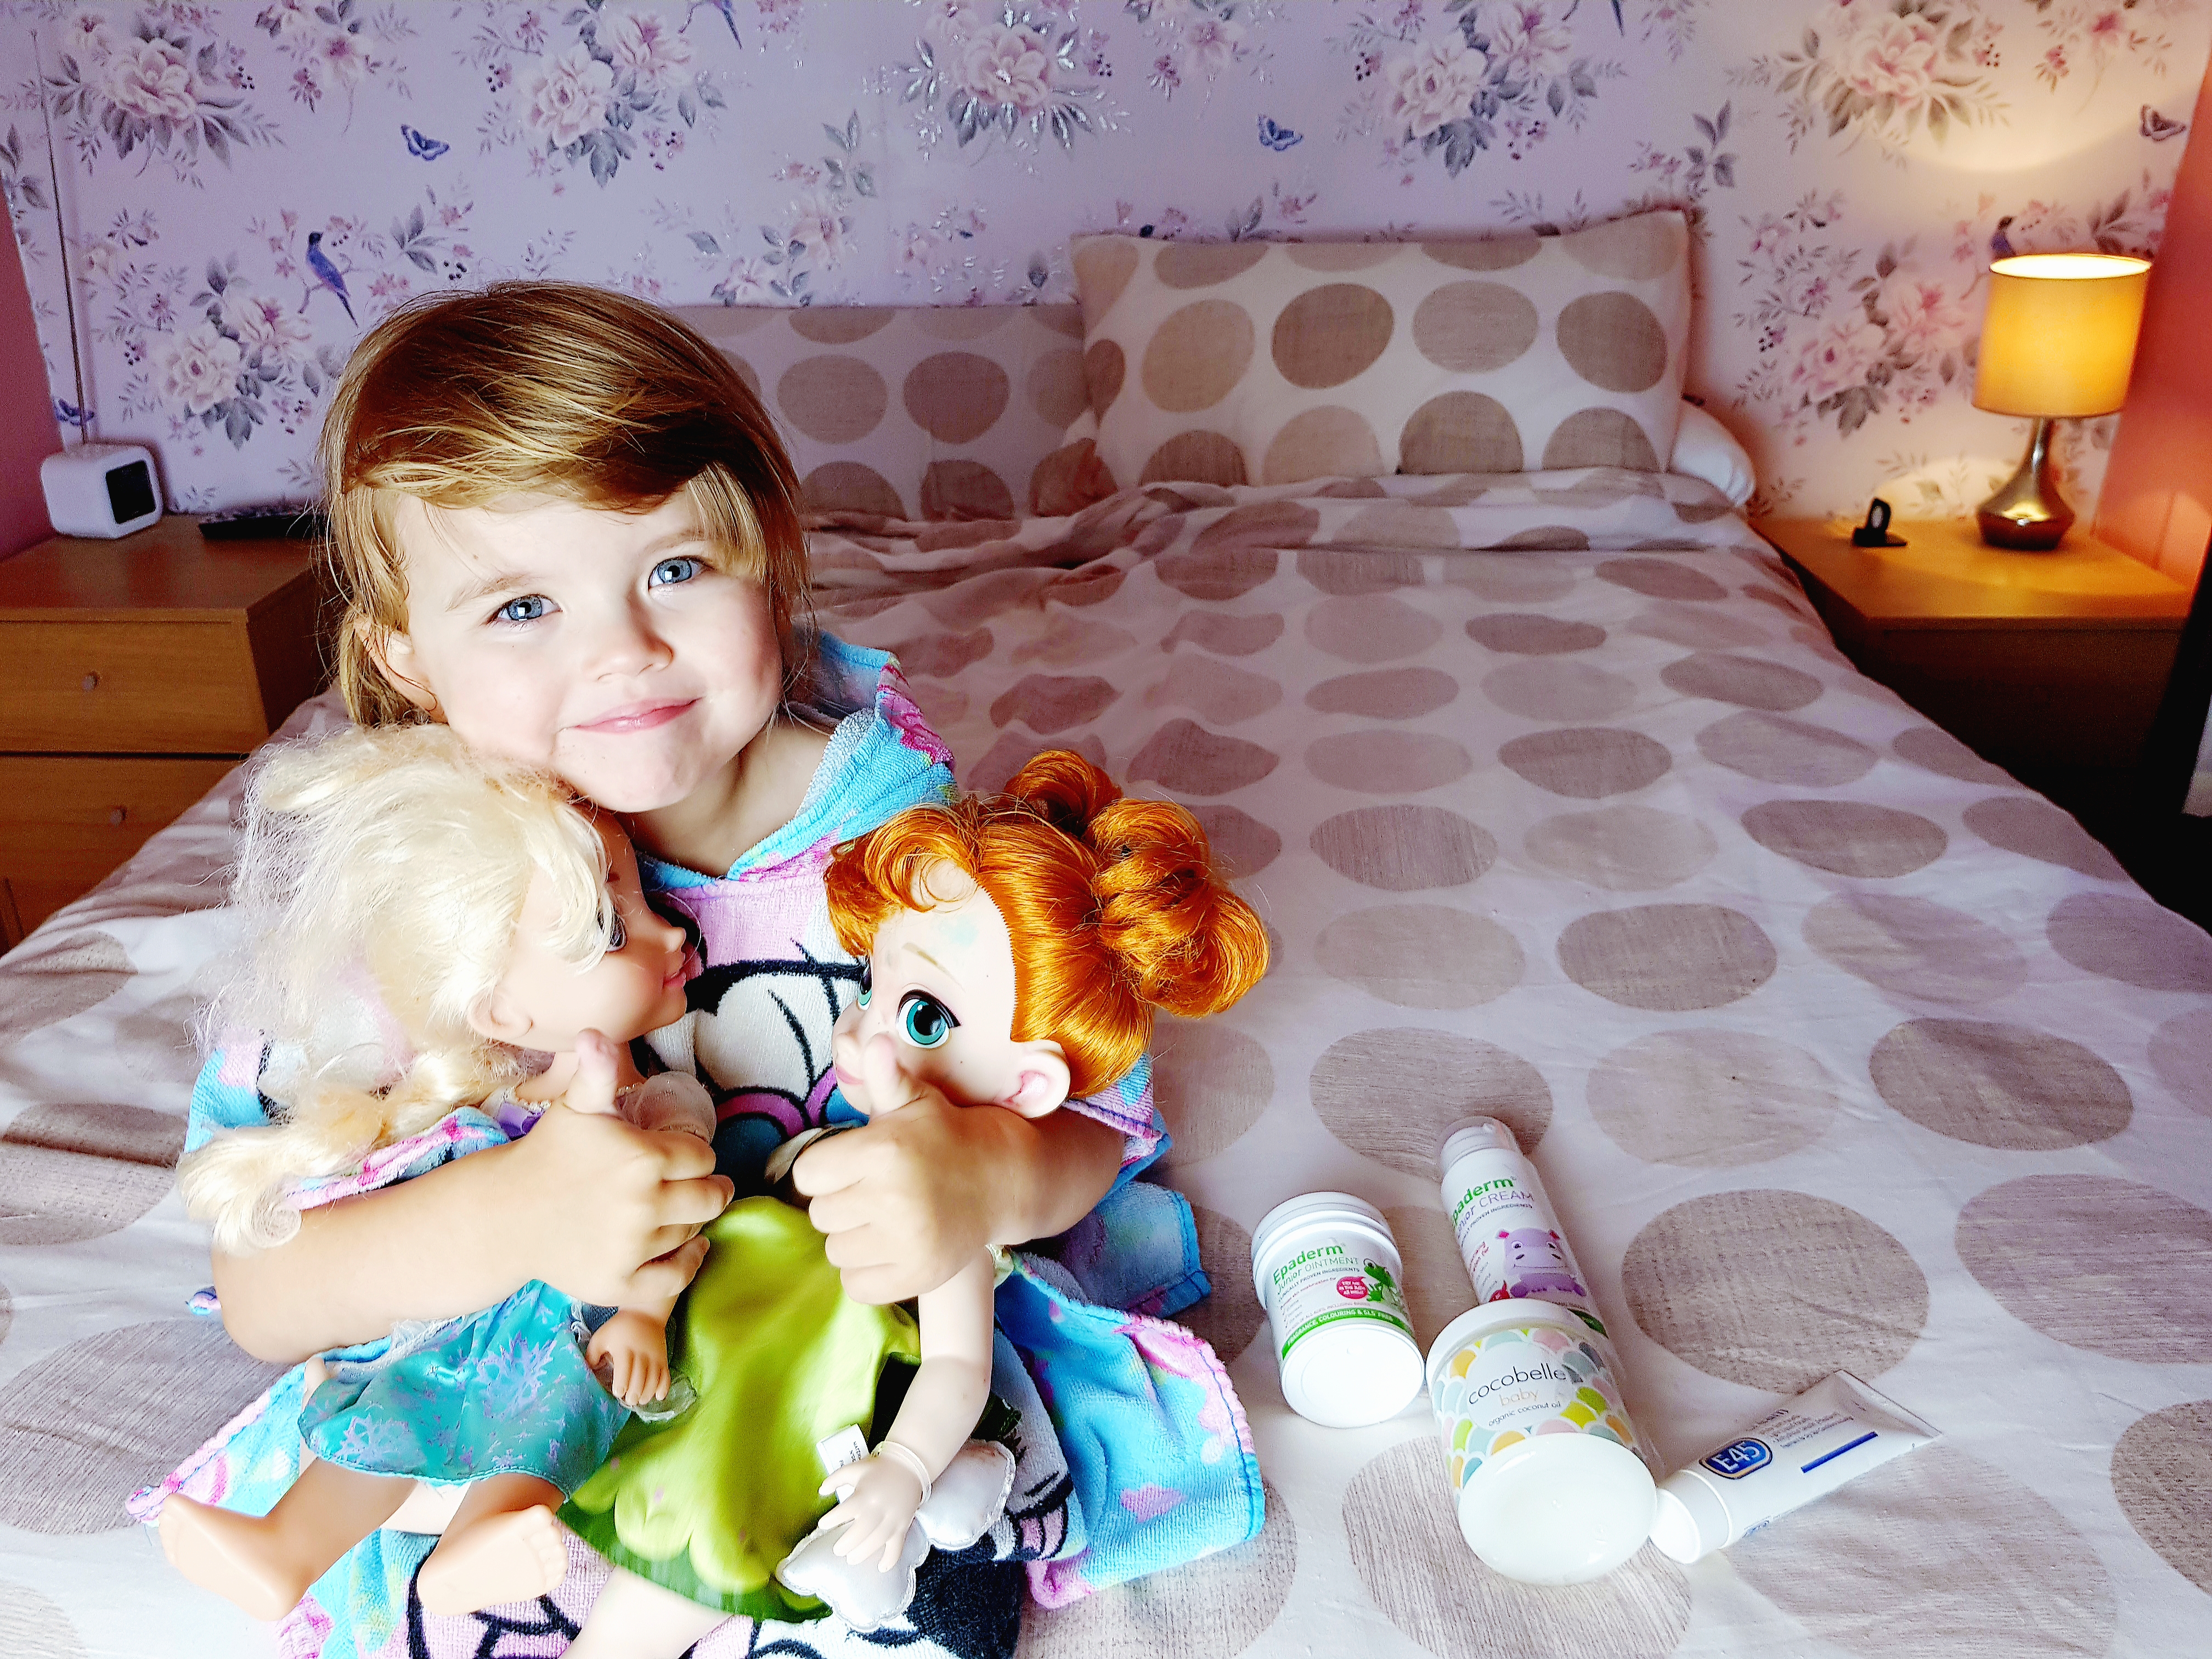 Shaniah with her skin care products and dolls